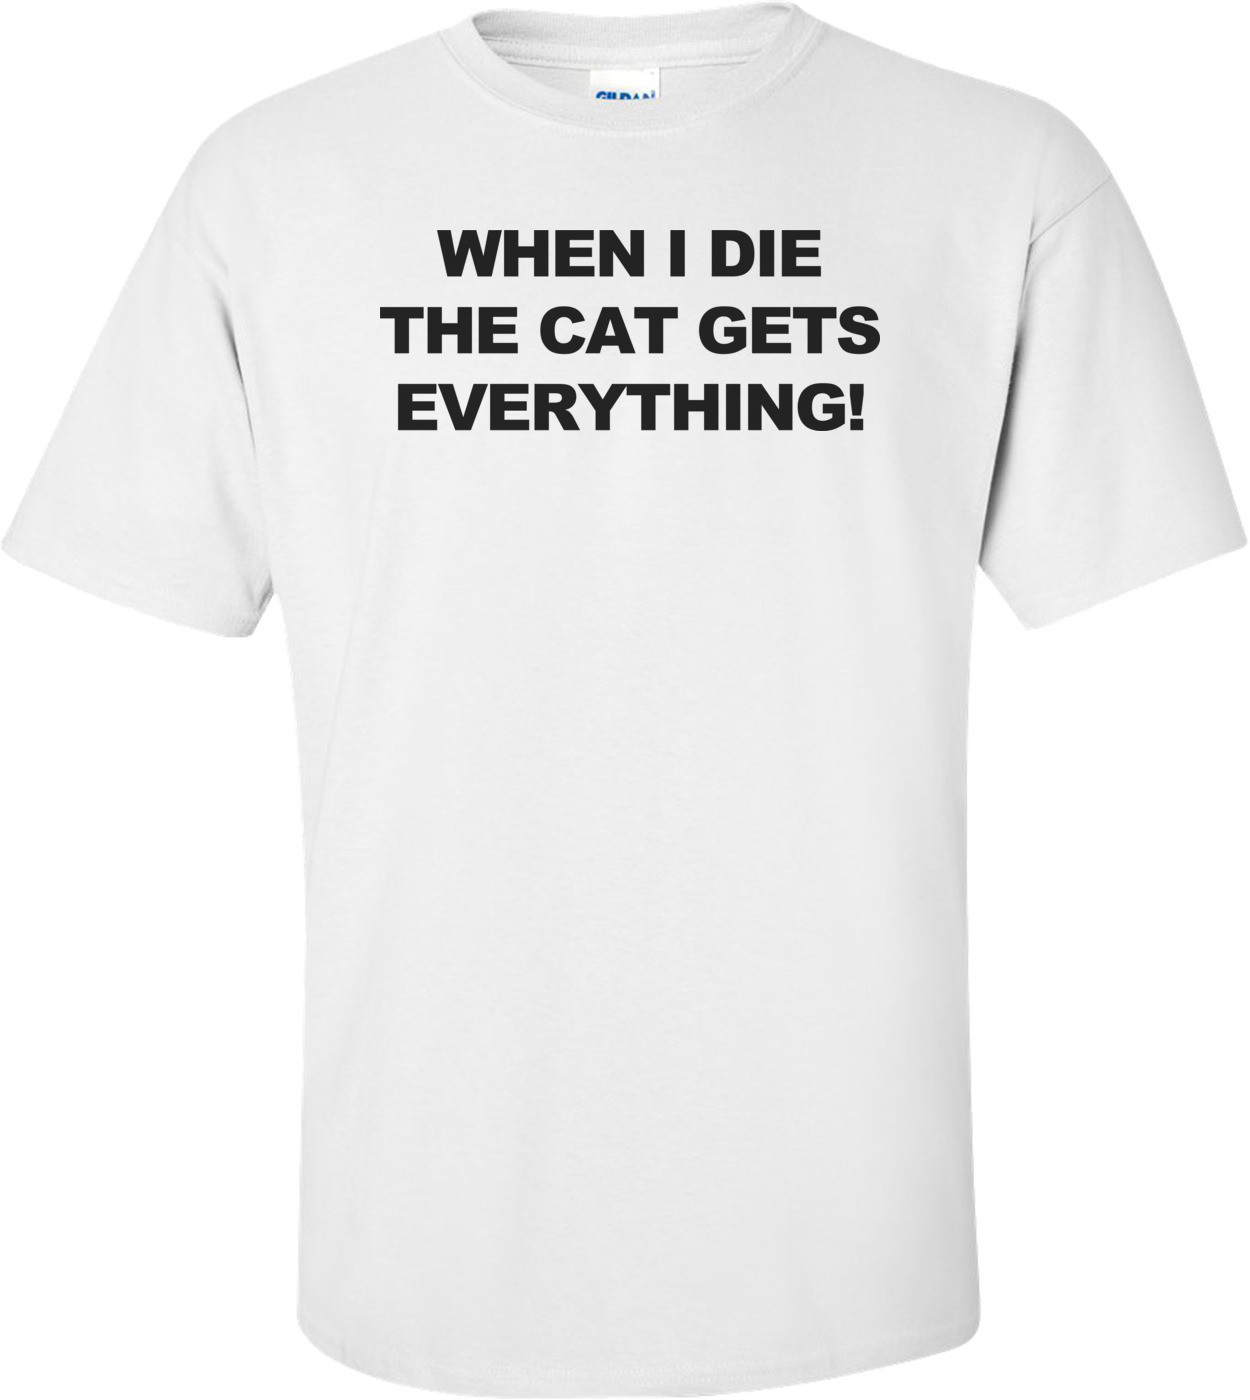 Cat Gets Everything! - Funny T-shirt